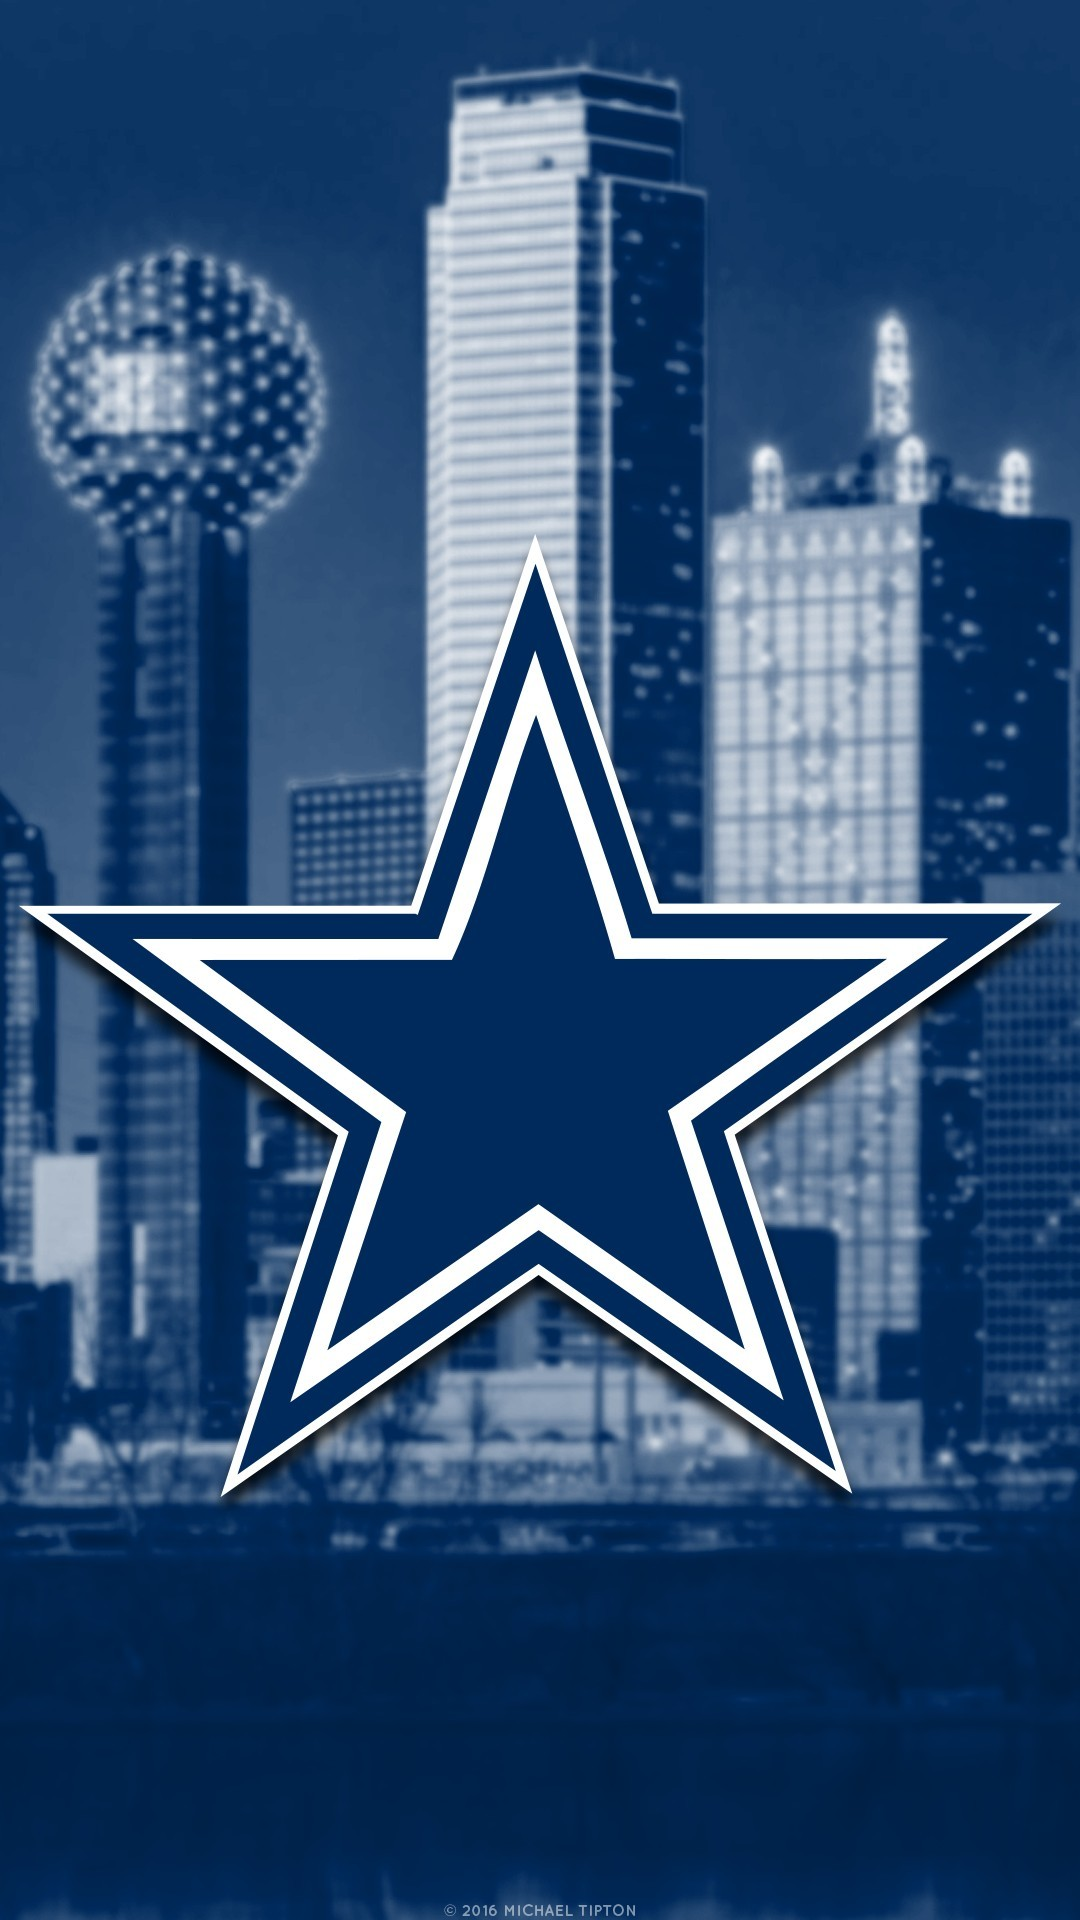 1080x1920 Dallas Cowboys Wallpaper ① Free Cool Full Hd Wallpapers